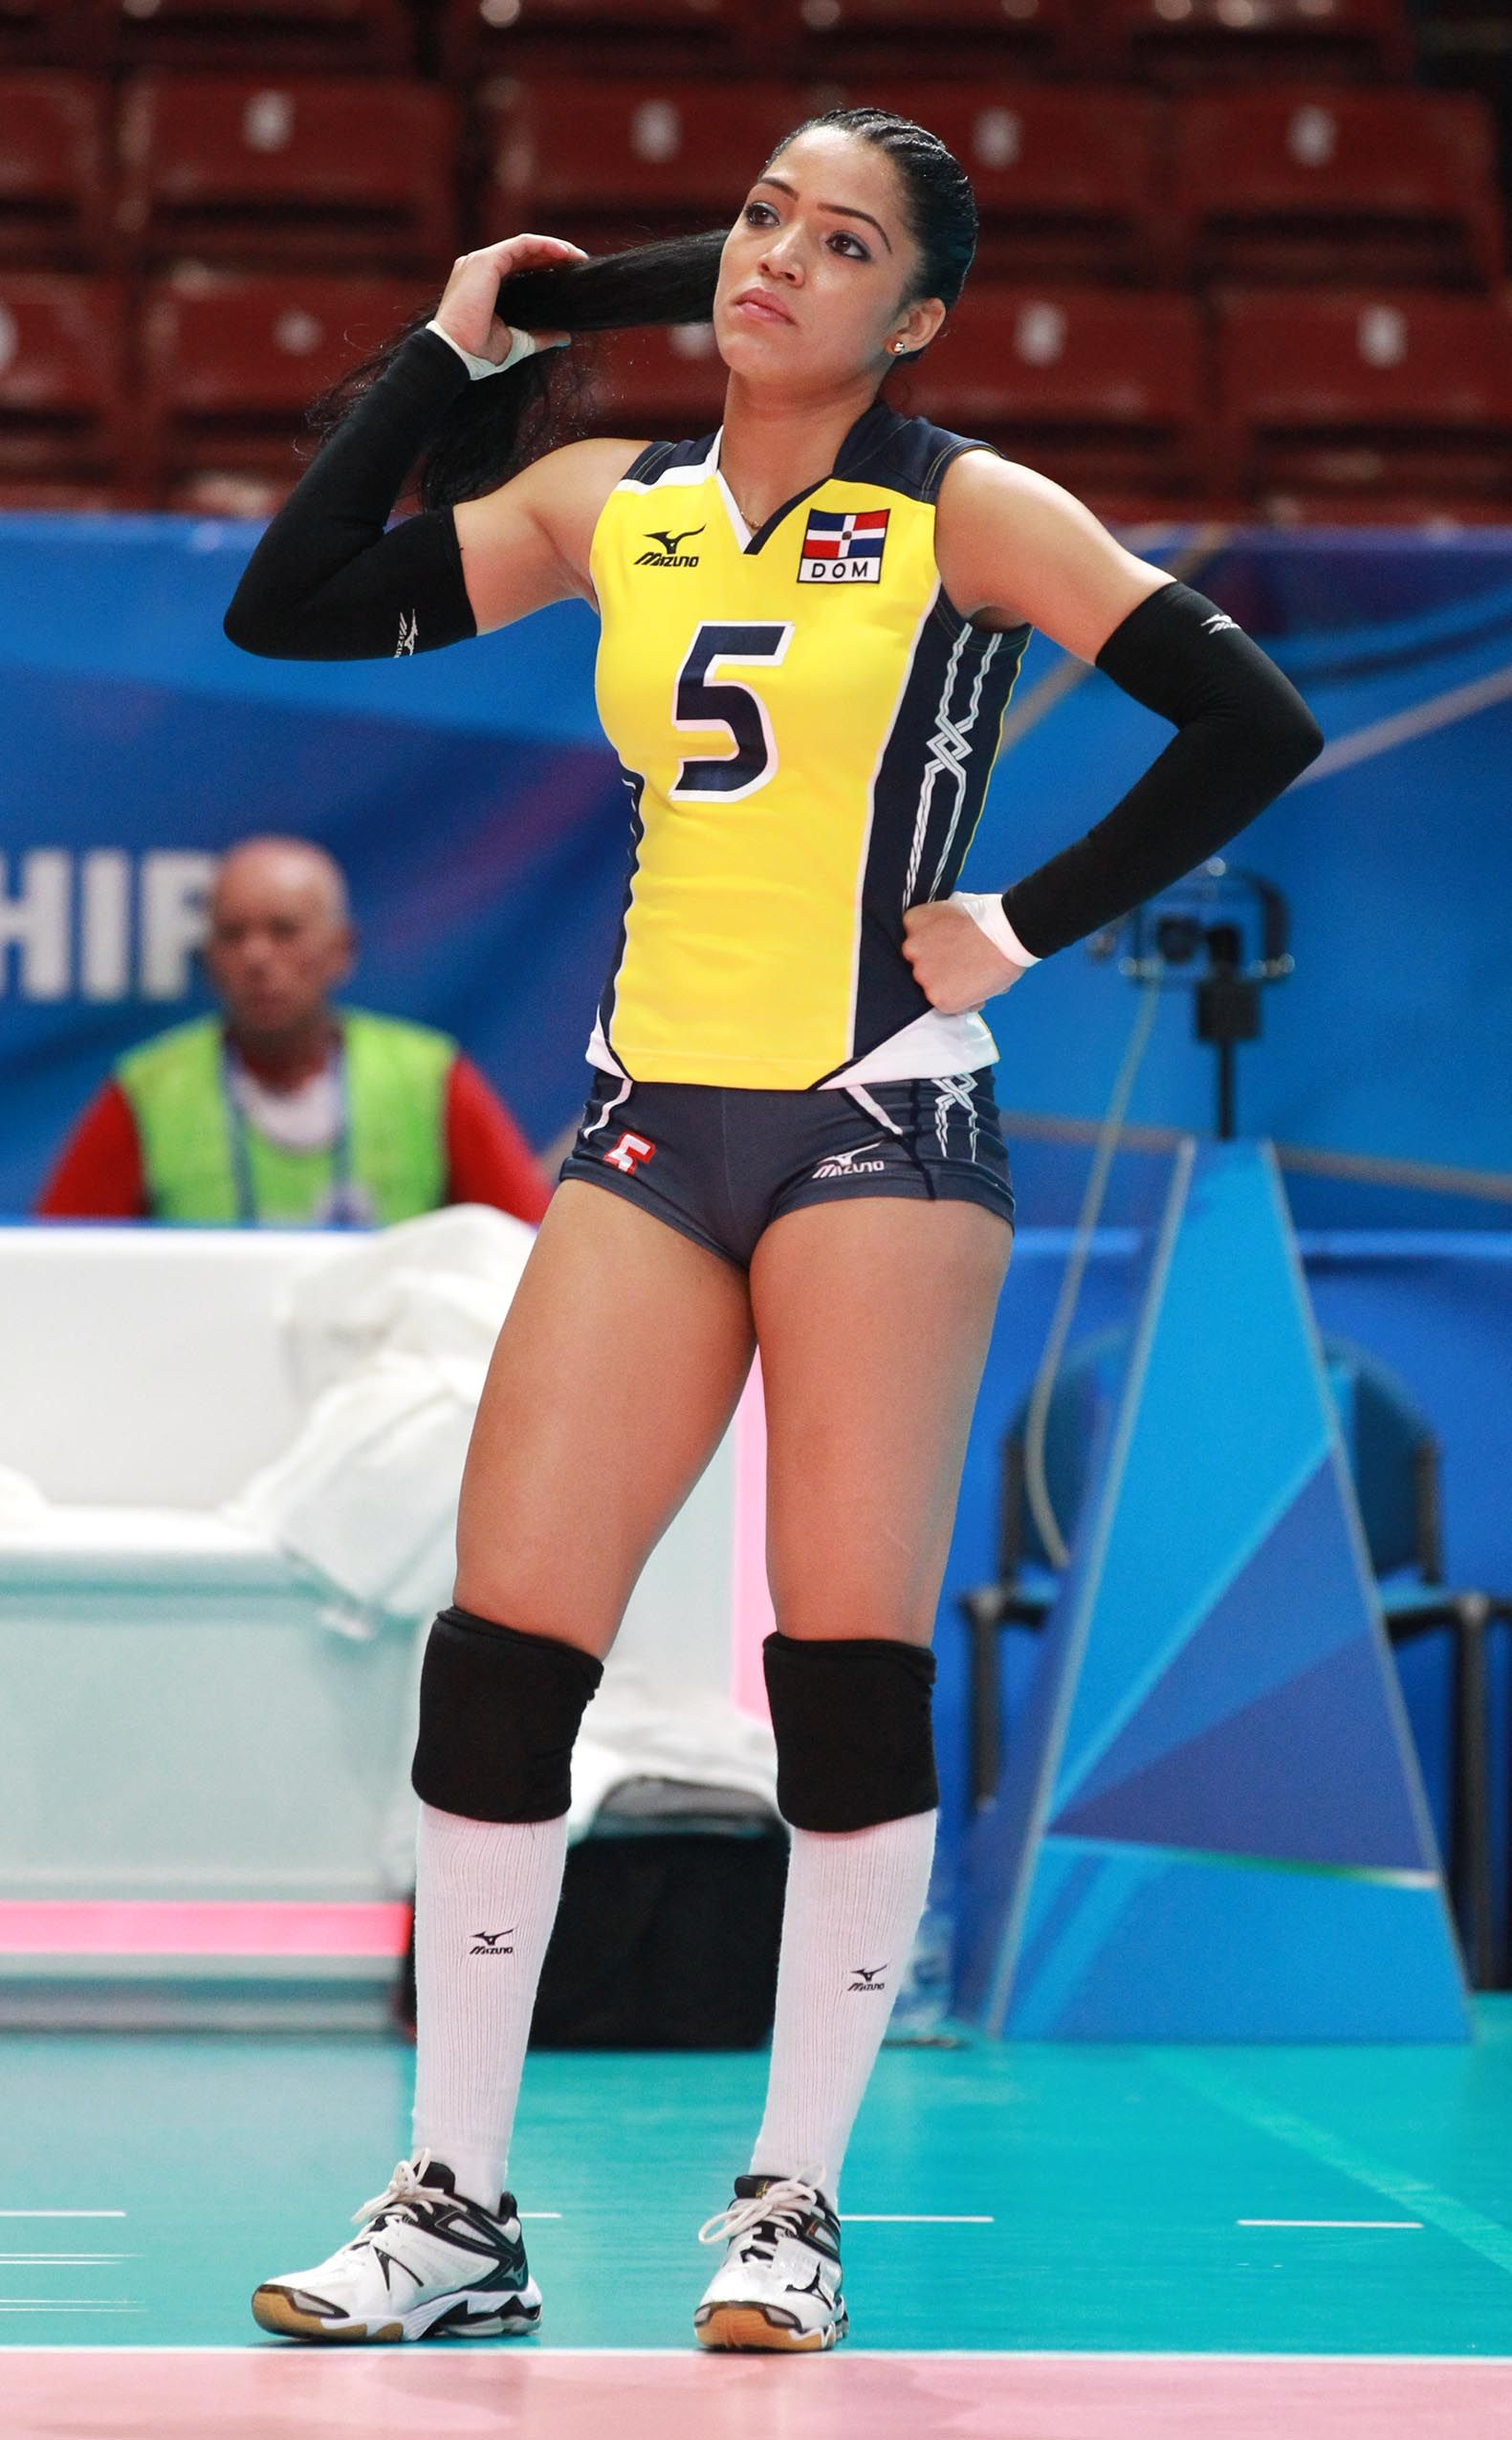 Brenda Castillo Il Libero Dell Repubblica Dominicana Female Volleyball Players Volleyball Players Sports Women